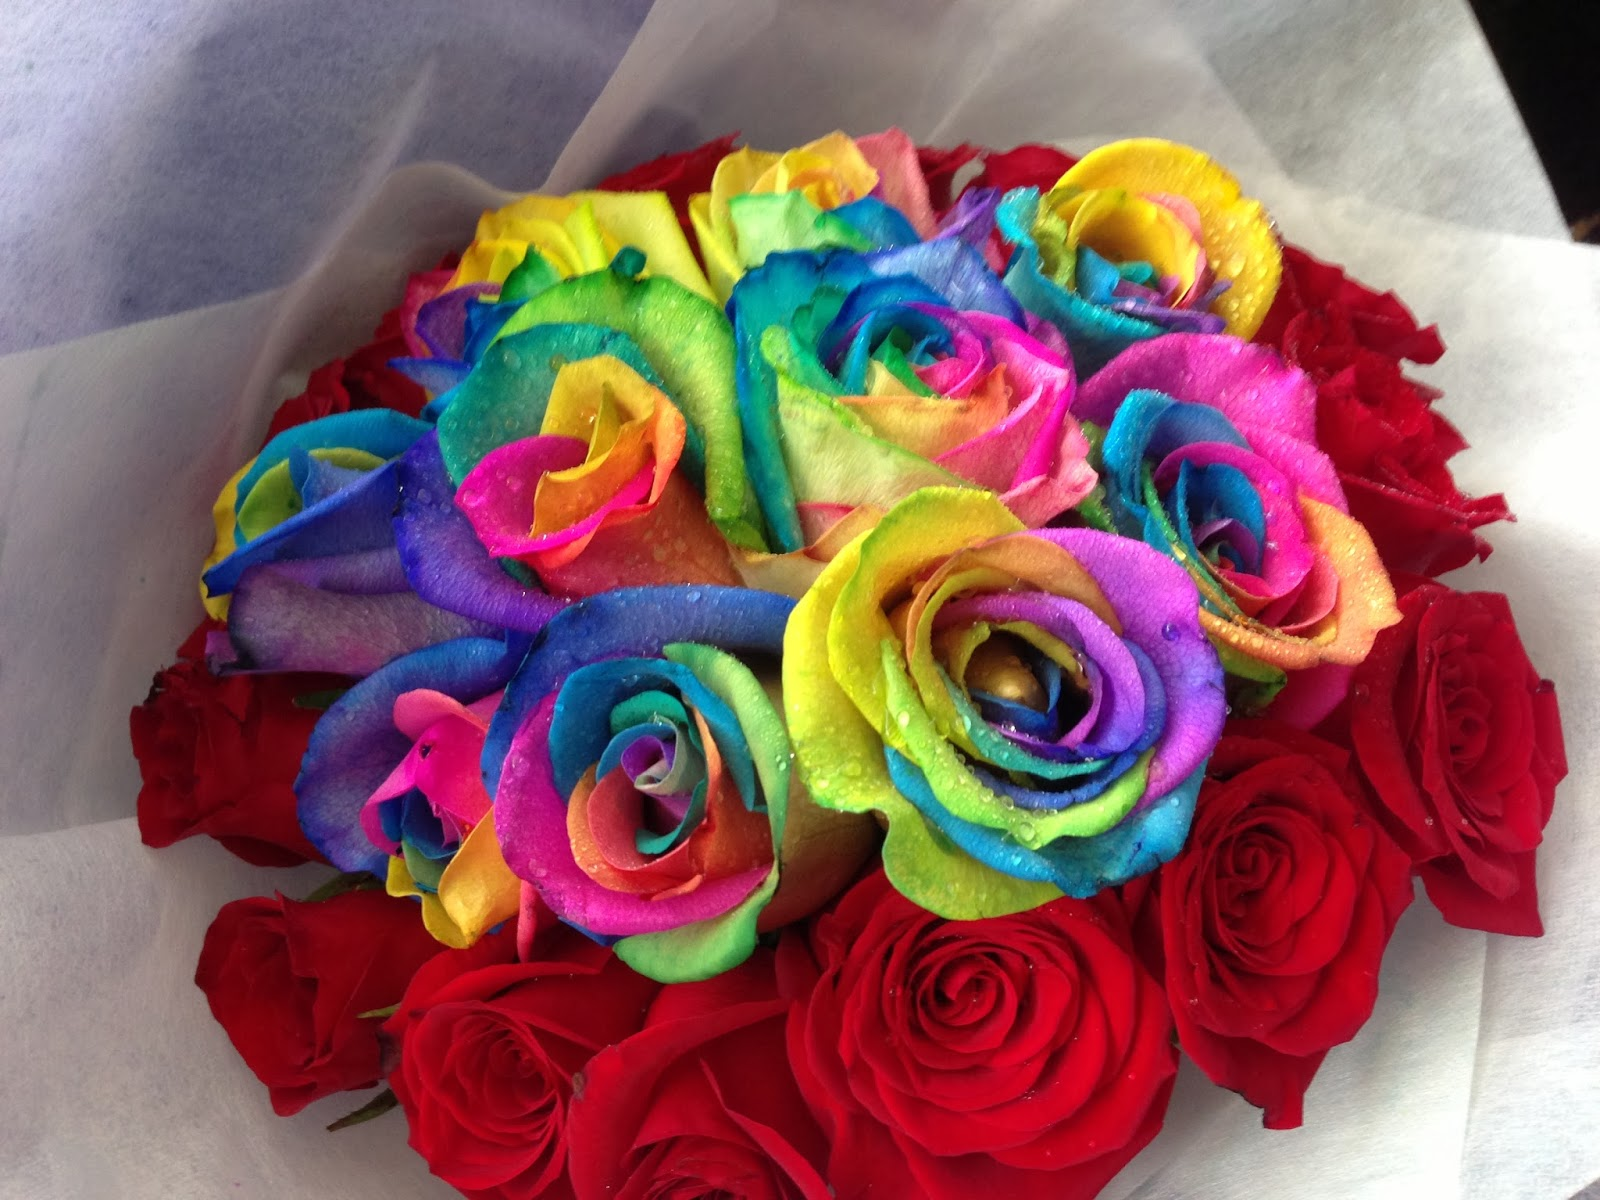 De floral gallery rainbow roses for Where can i buy rainbow roses